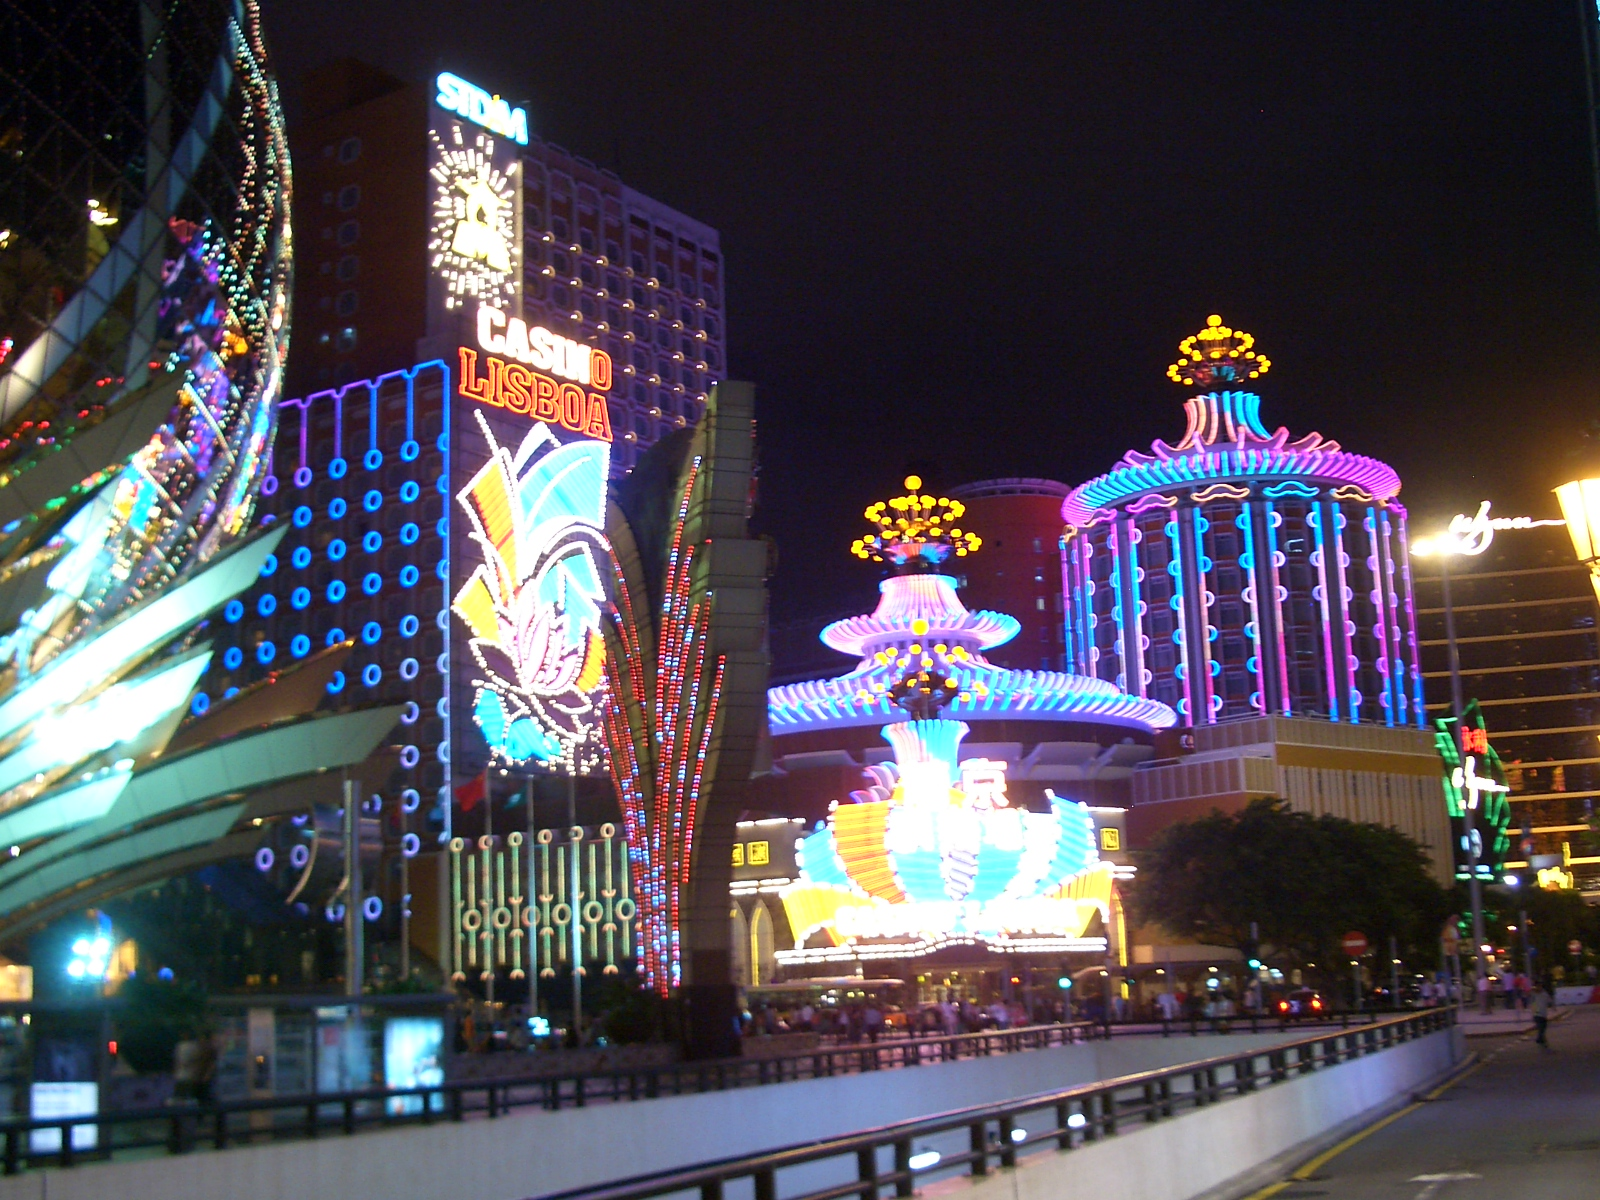 Macau-Casino-Lisboa-at-night-0824